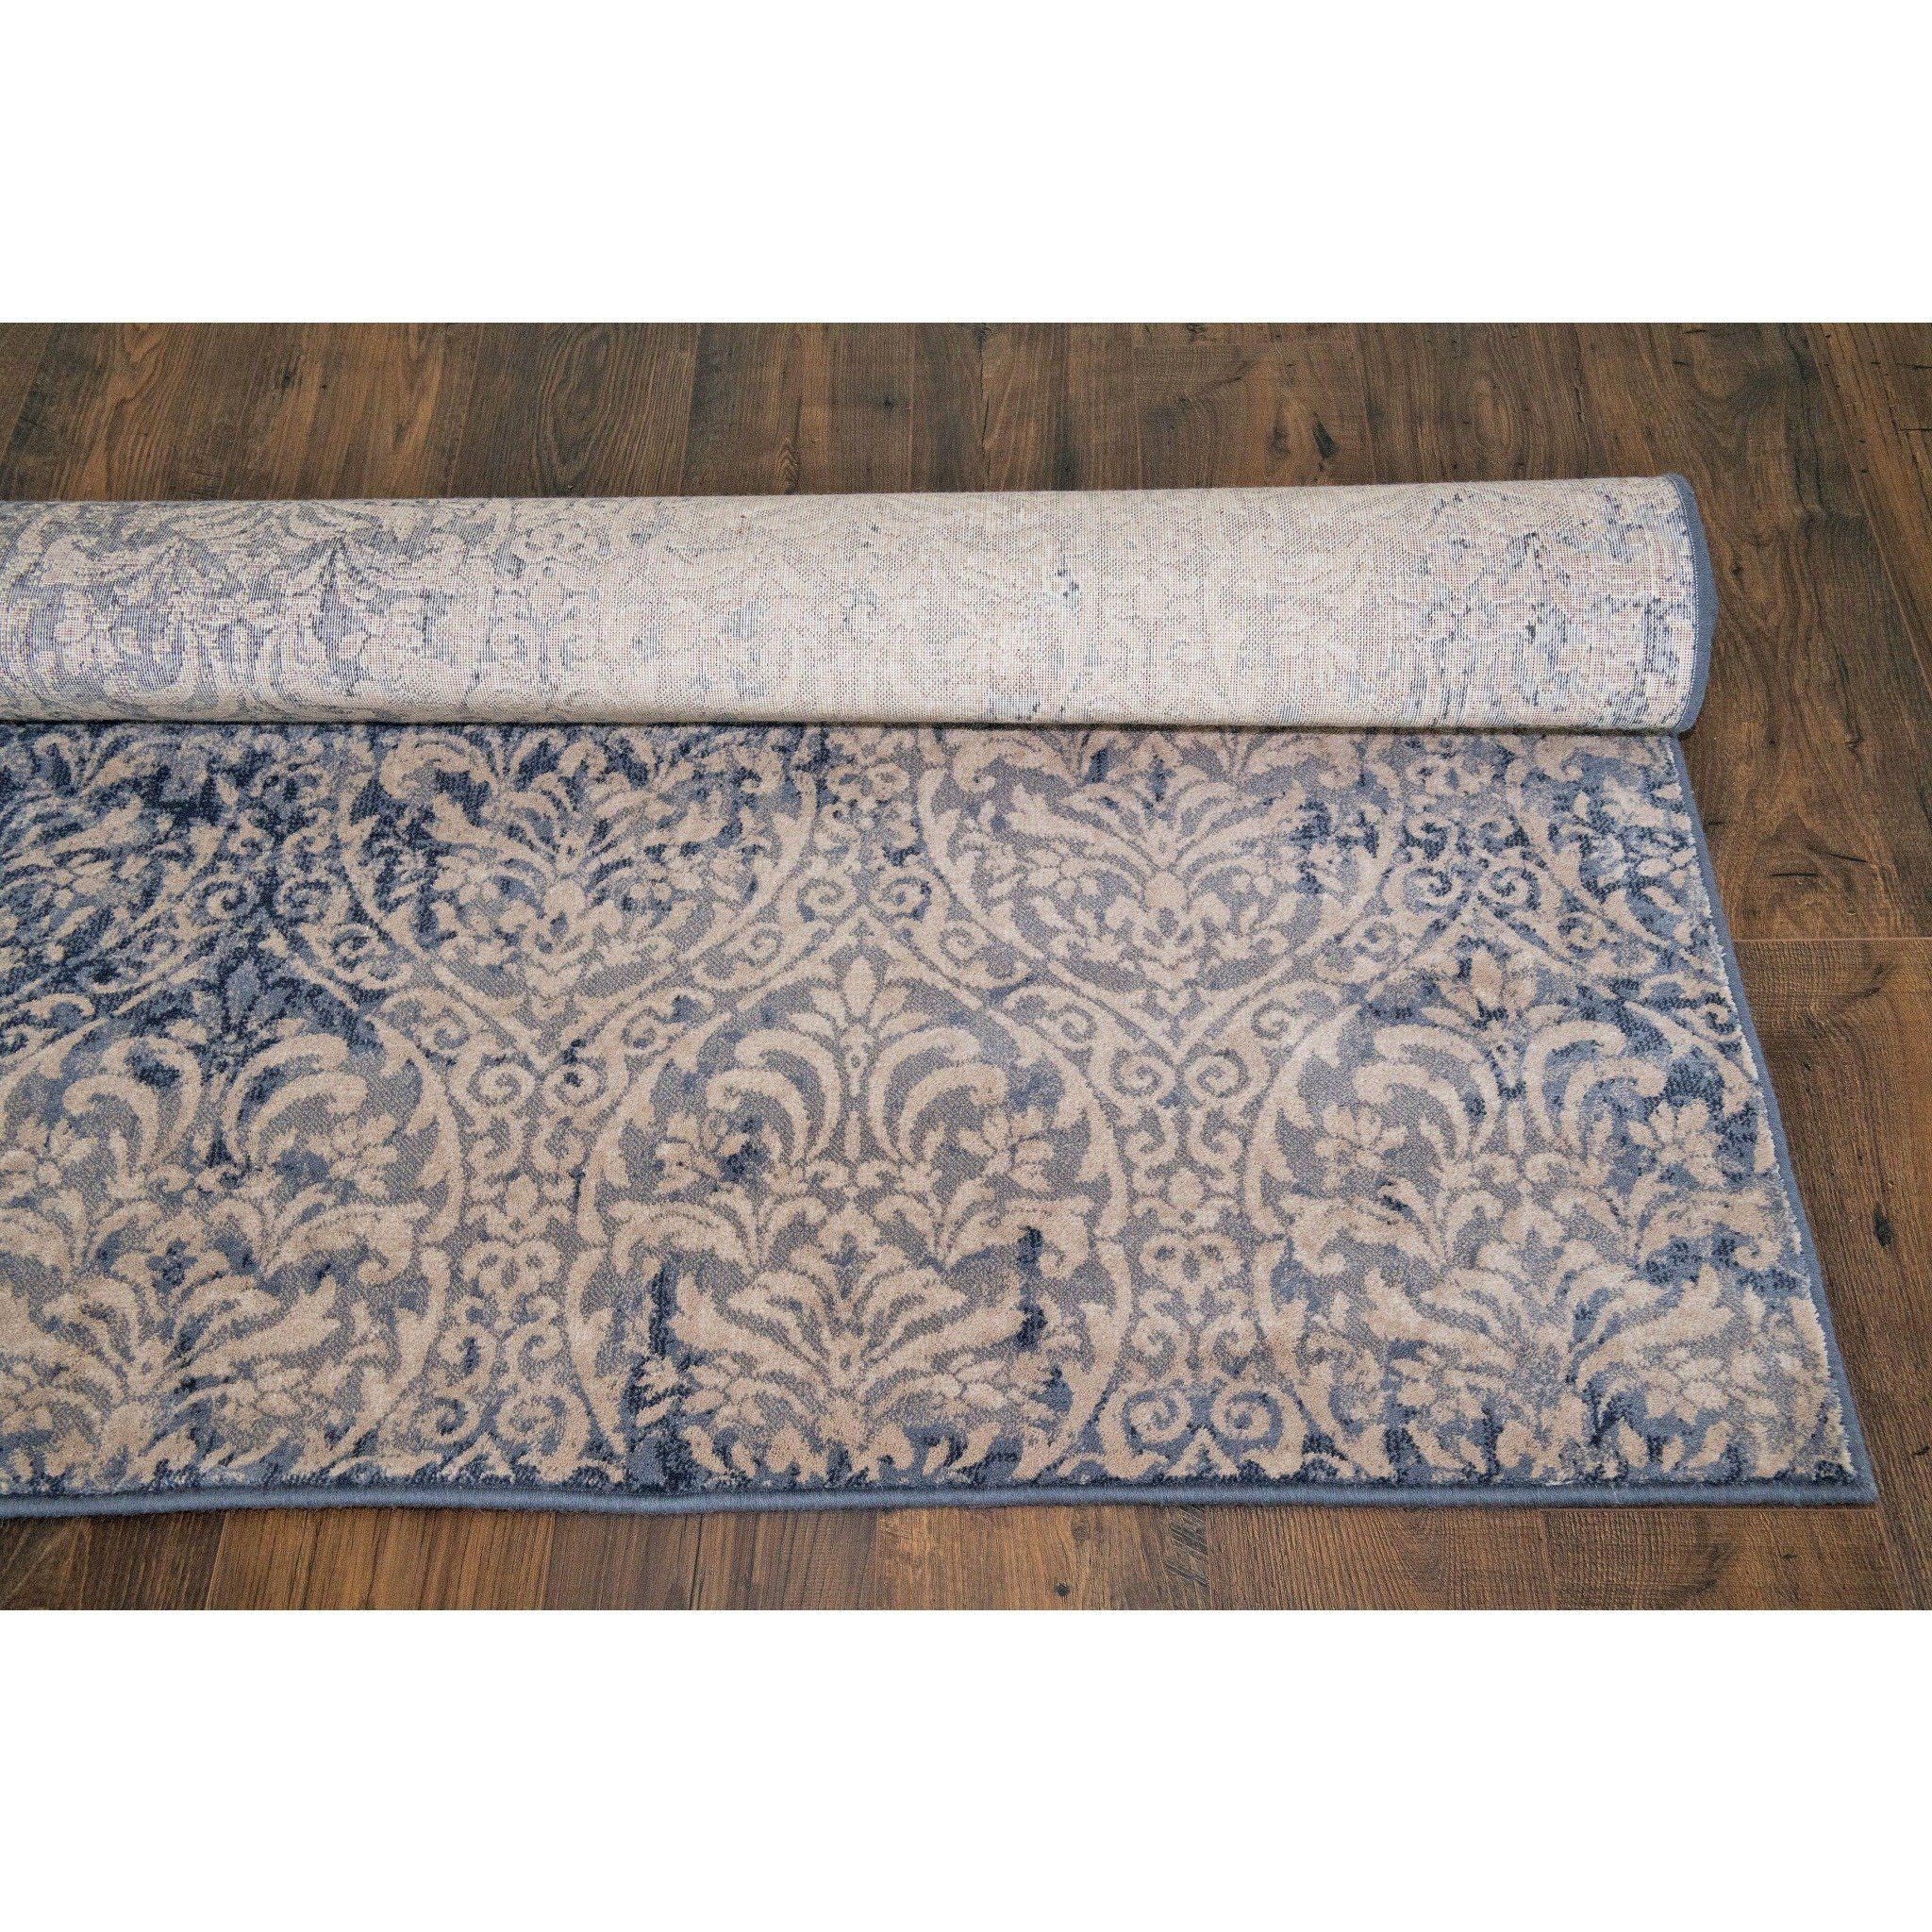 Details About Blue Modern Large Area Rugs 5x8 Carpet Contemporary Design Rug Soft Red Cream